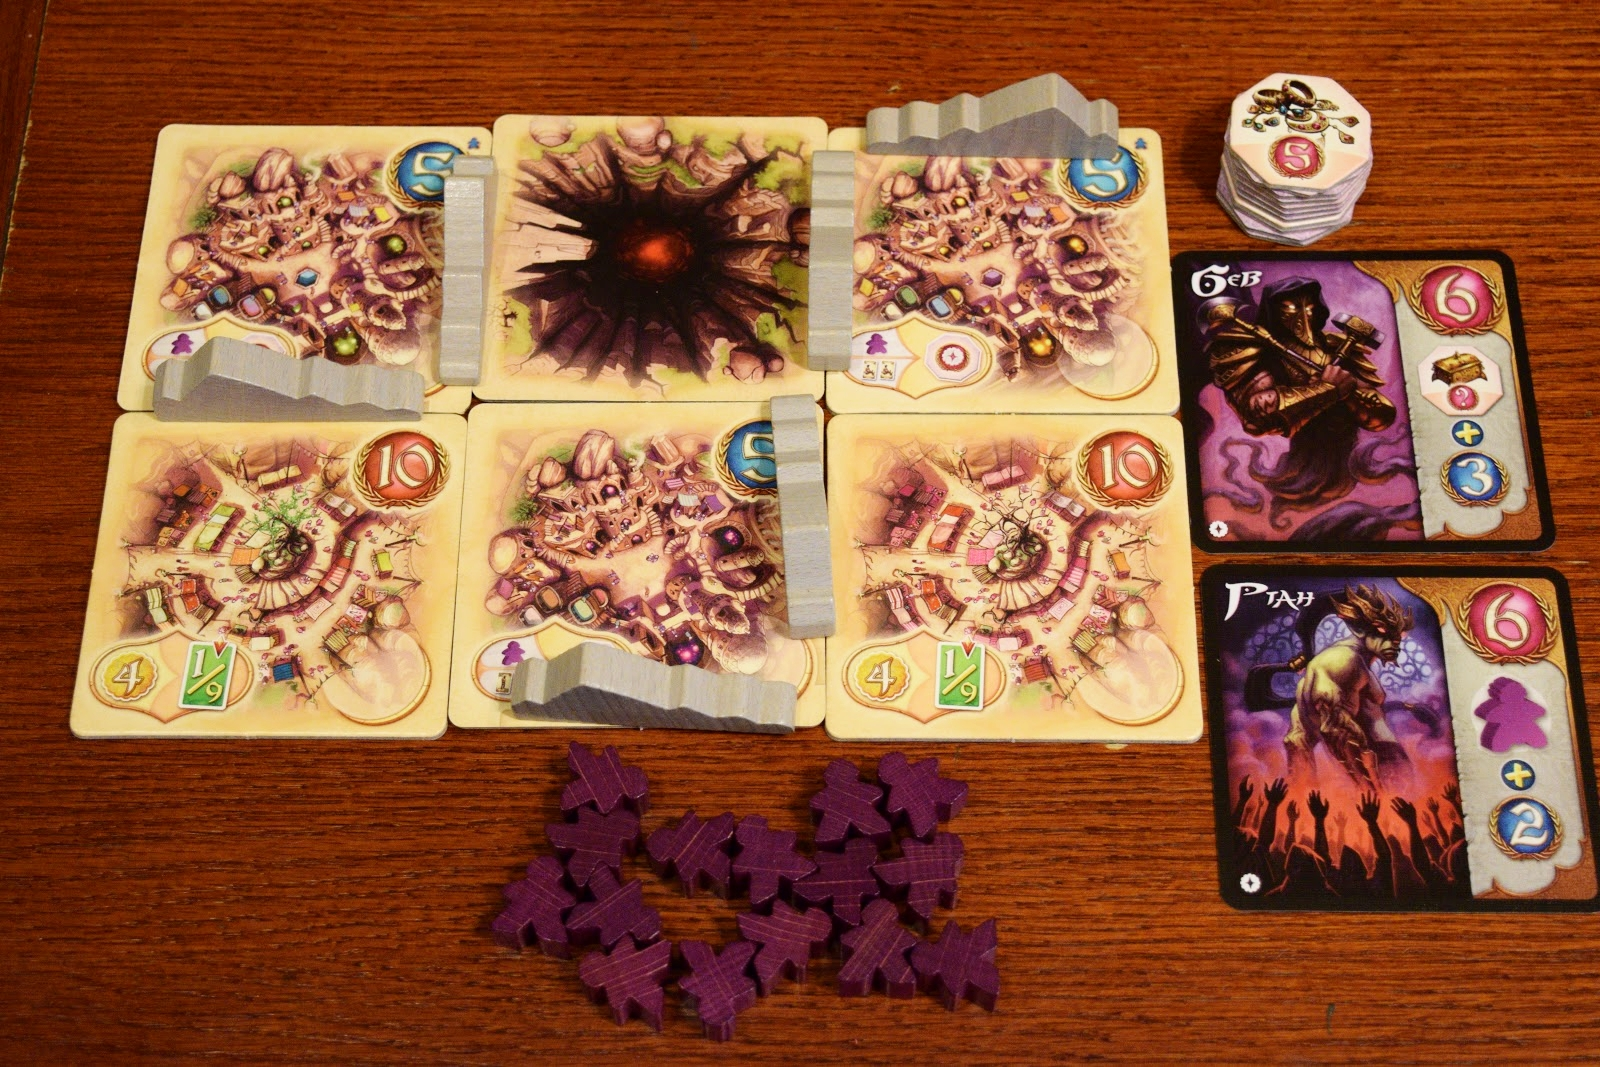 Components for the expansion - Artisans of Naqala.